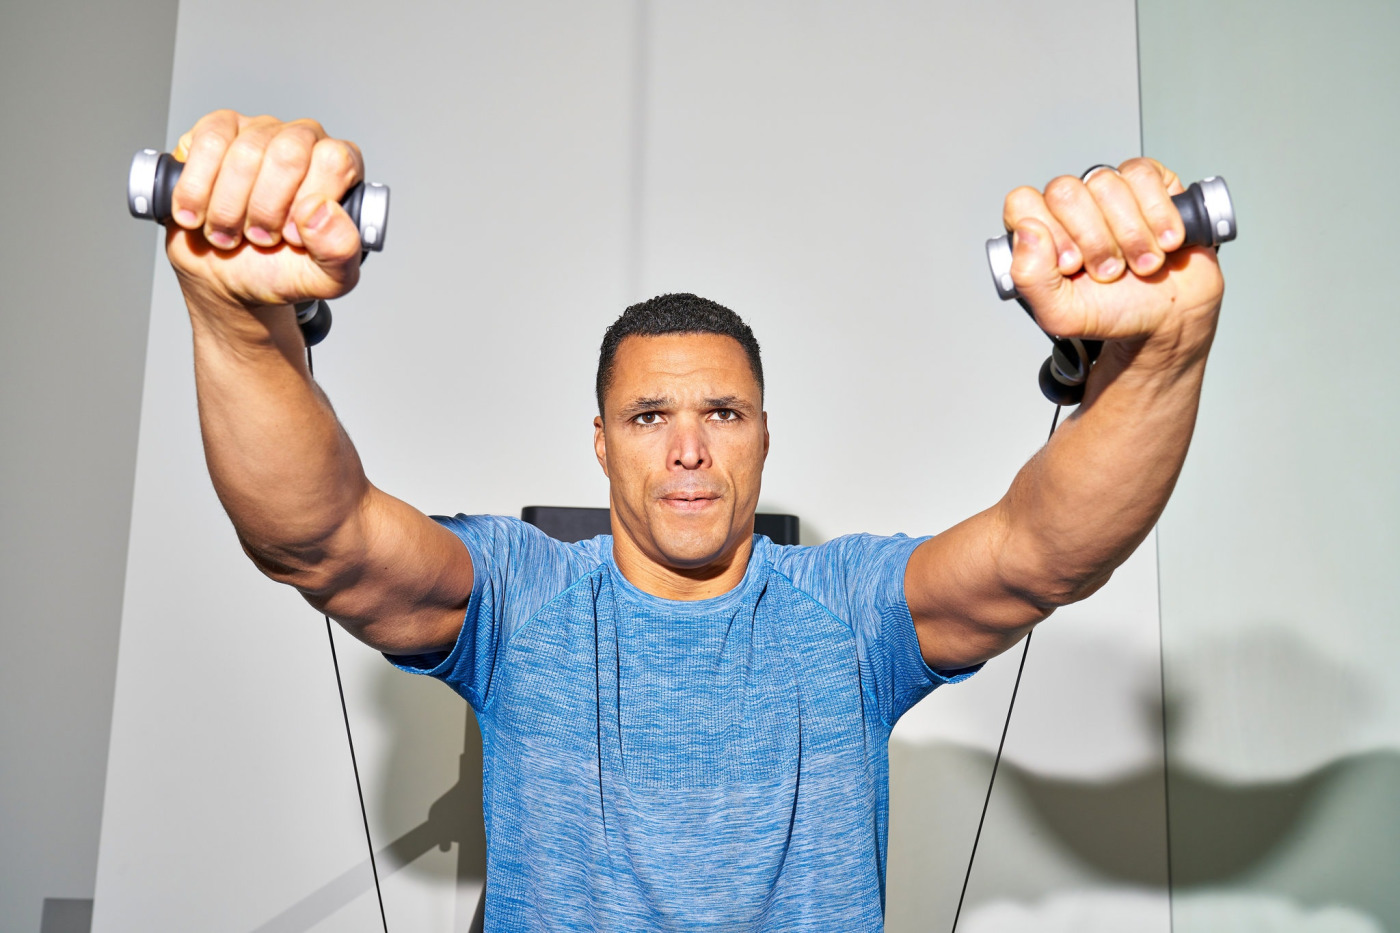 The New York Times: N.F.L. Hall of Famer Tony Gonzalez Is Serious About His Beauty Sleep